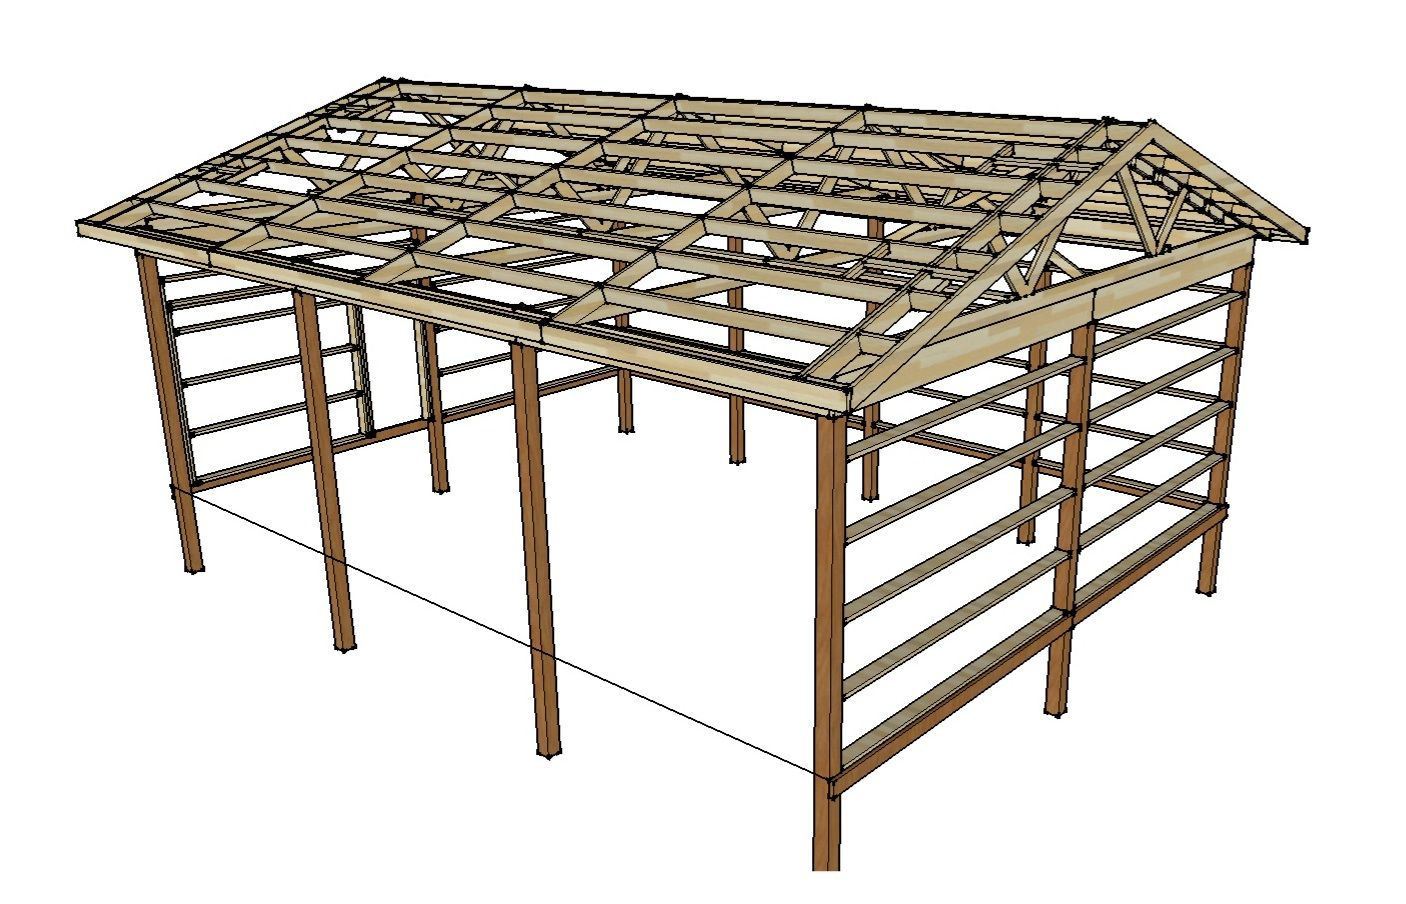 Pole barn plans and materials redneck diy outdoor for Pole barn layout